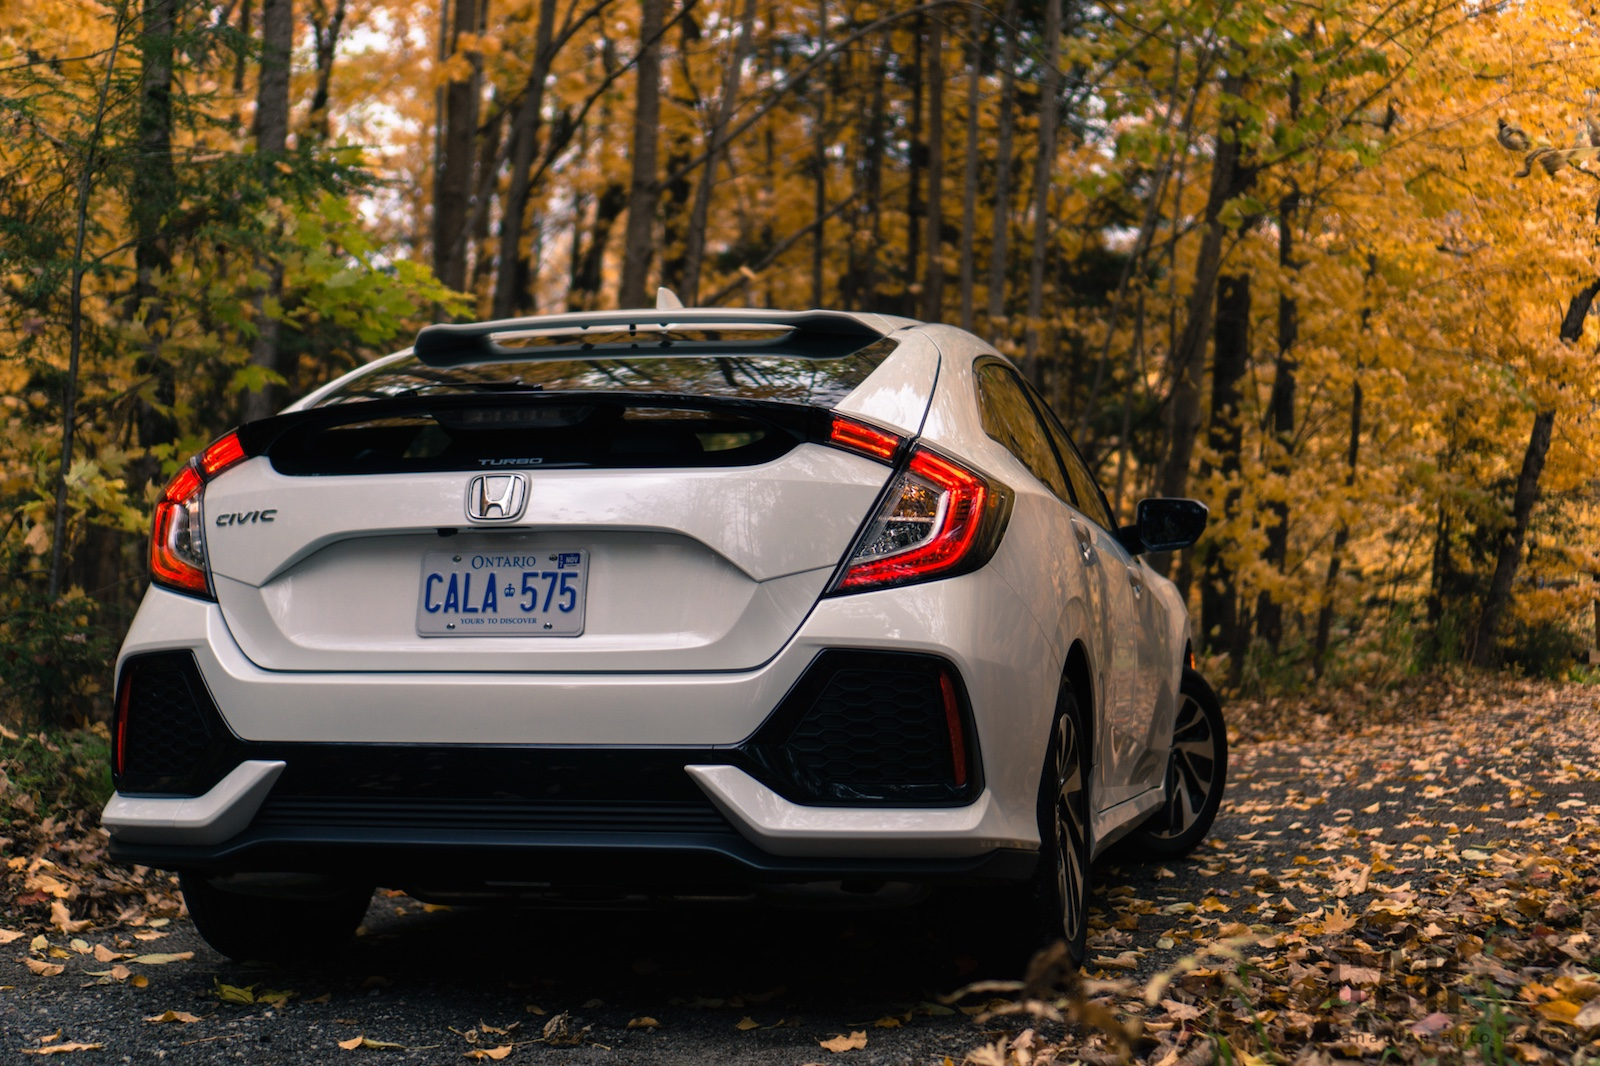 Build A Honda >> Review: 2017 Honda Civic Hatchback | Canadian Auto Review